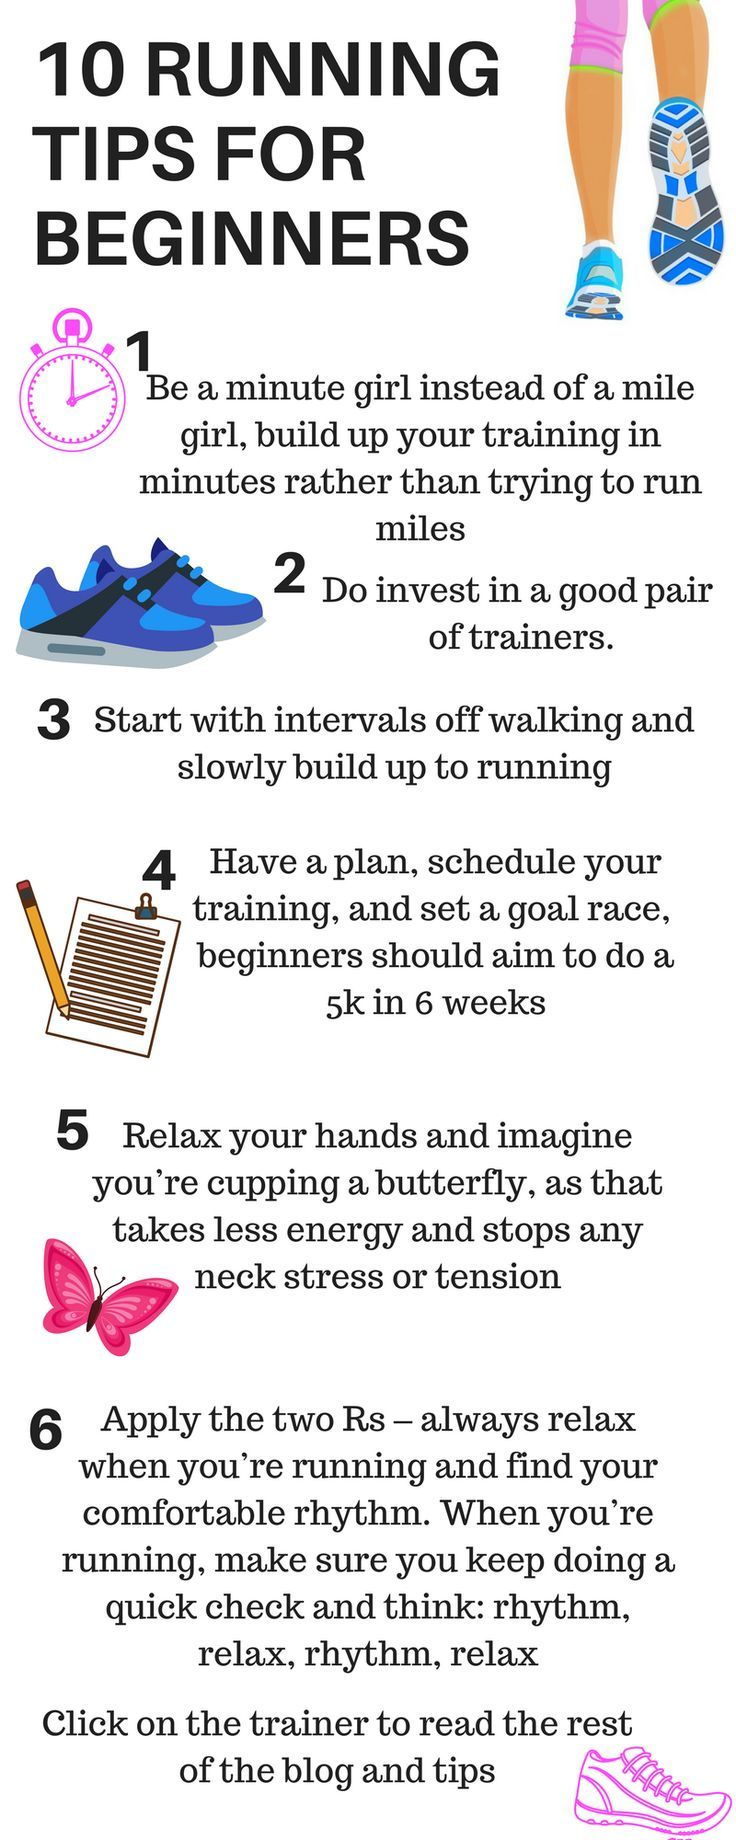 TIPS TO MAKE RUNNING EASIER